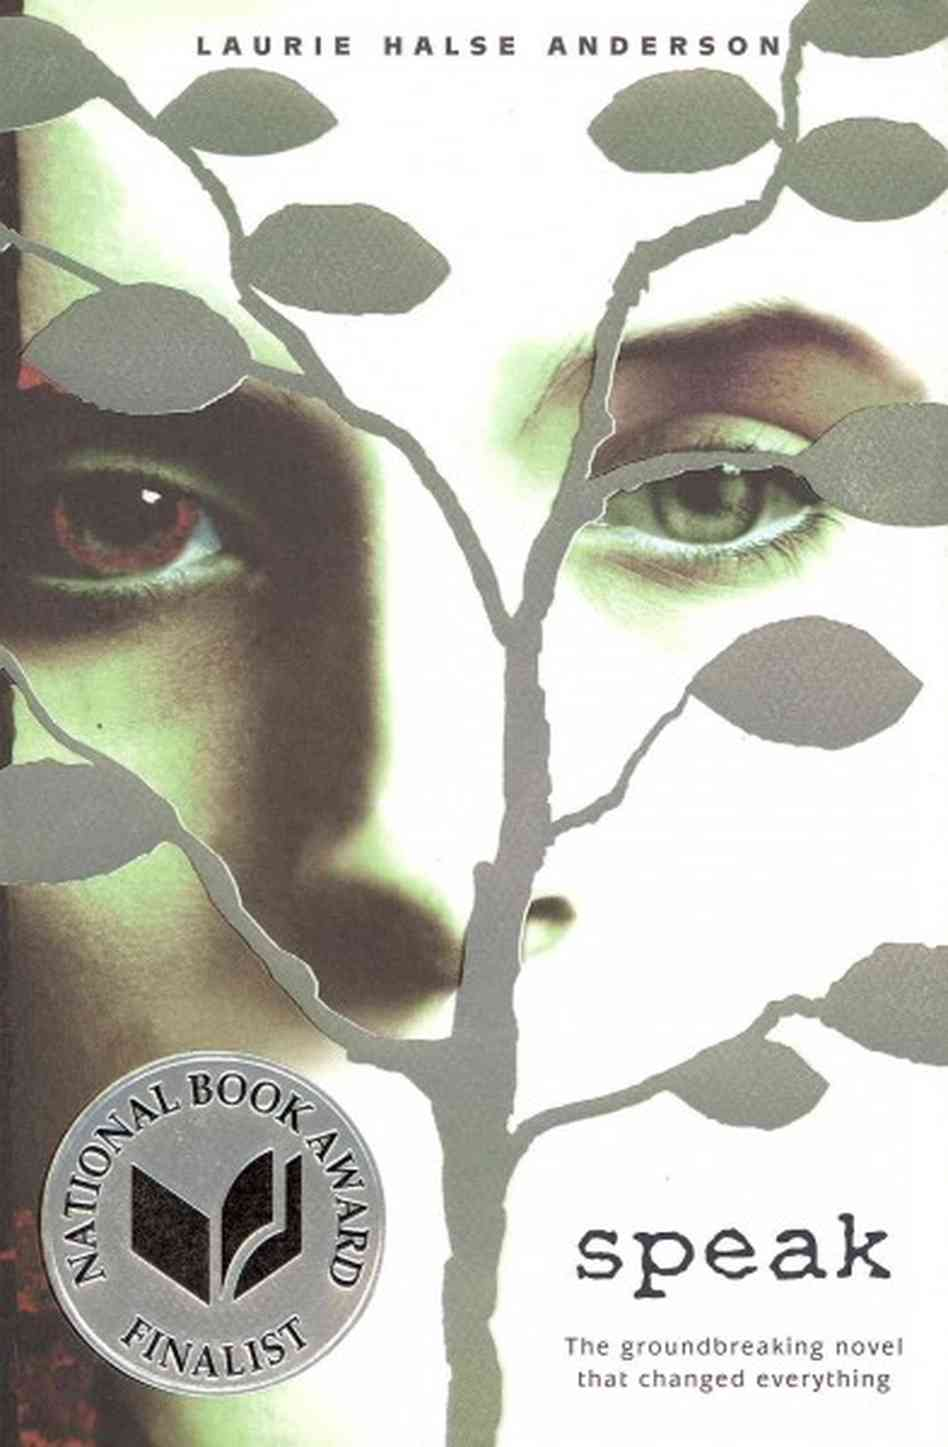 Speak Up! for Speak – Inspiring Novel by Laurie Halse Anderson ...